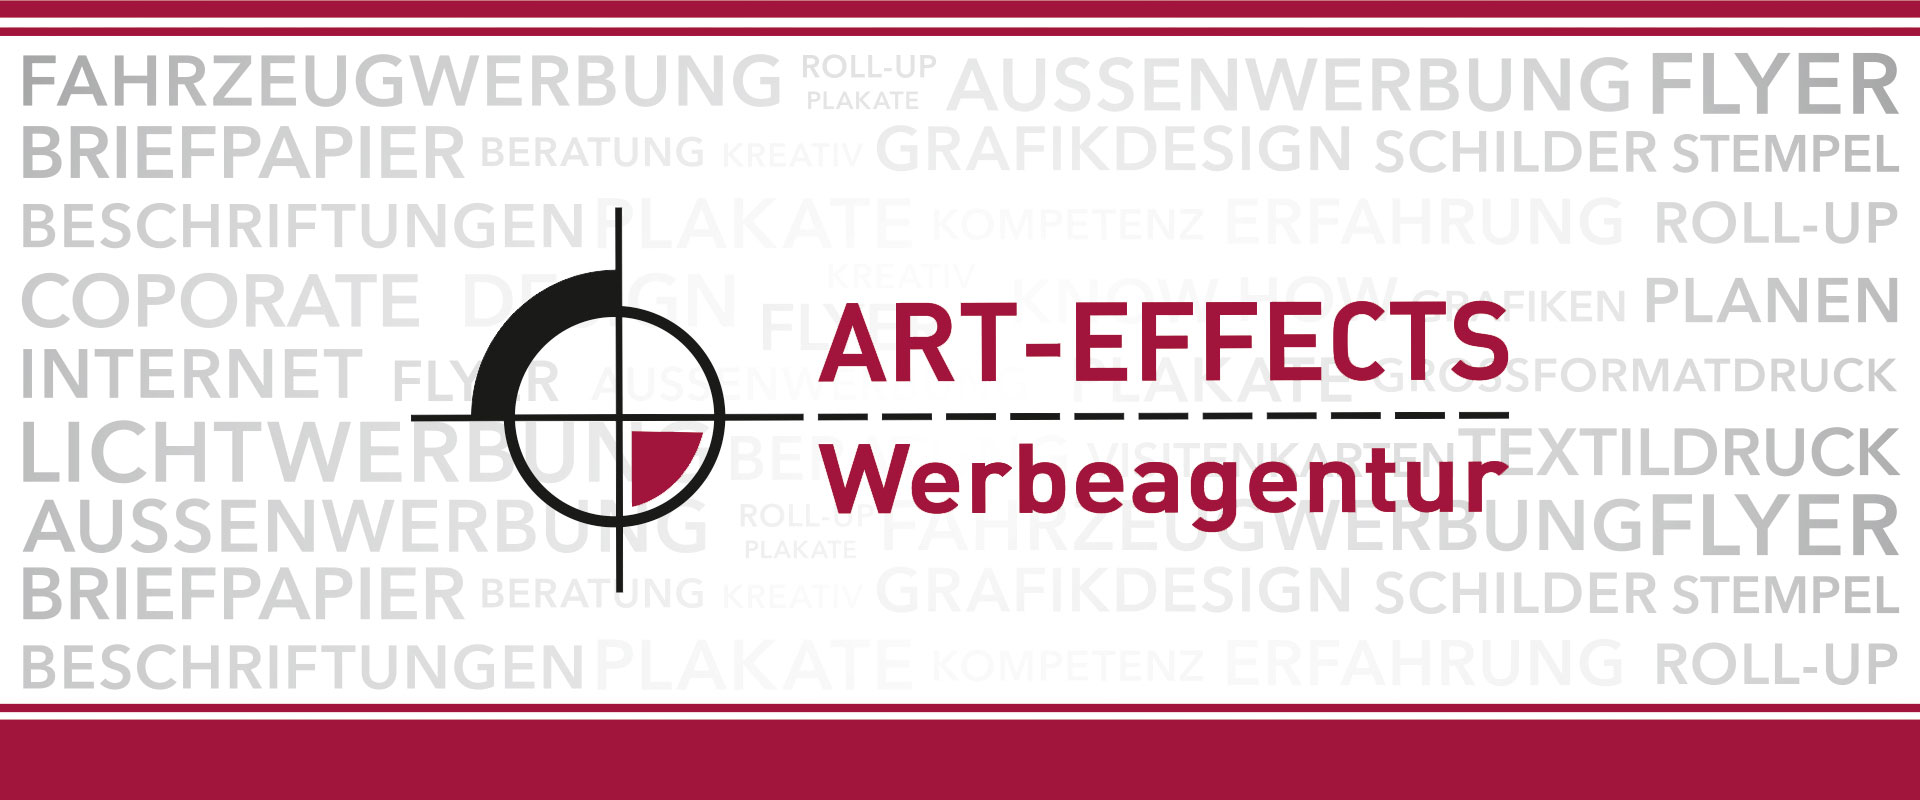 Art Effects Werbeagentur